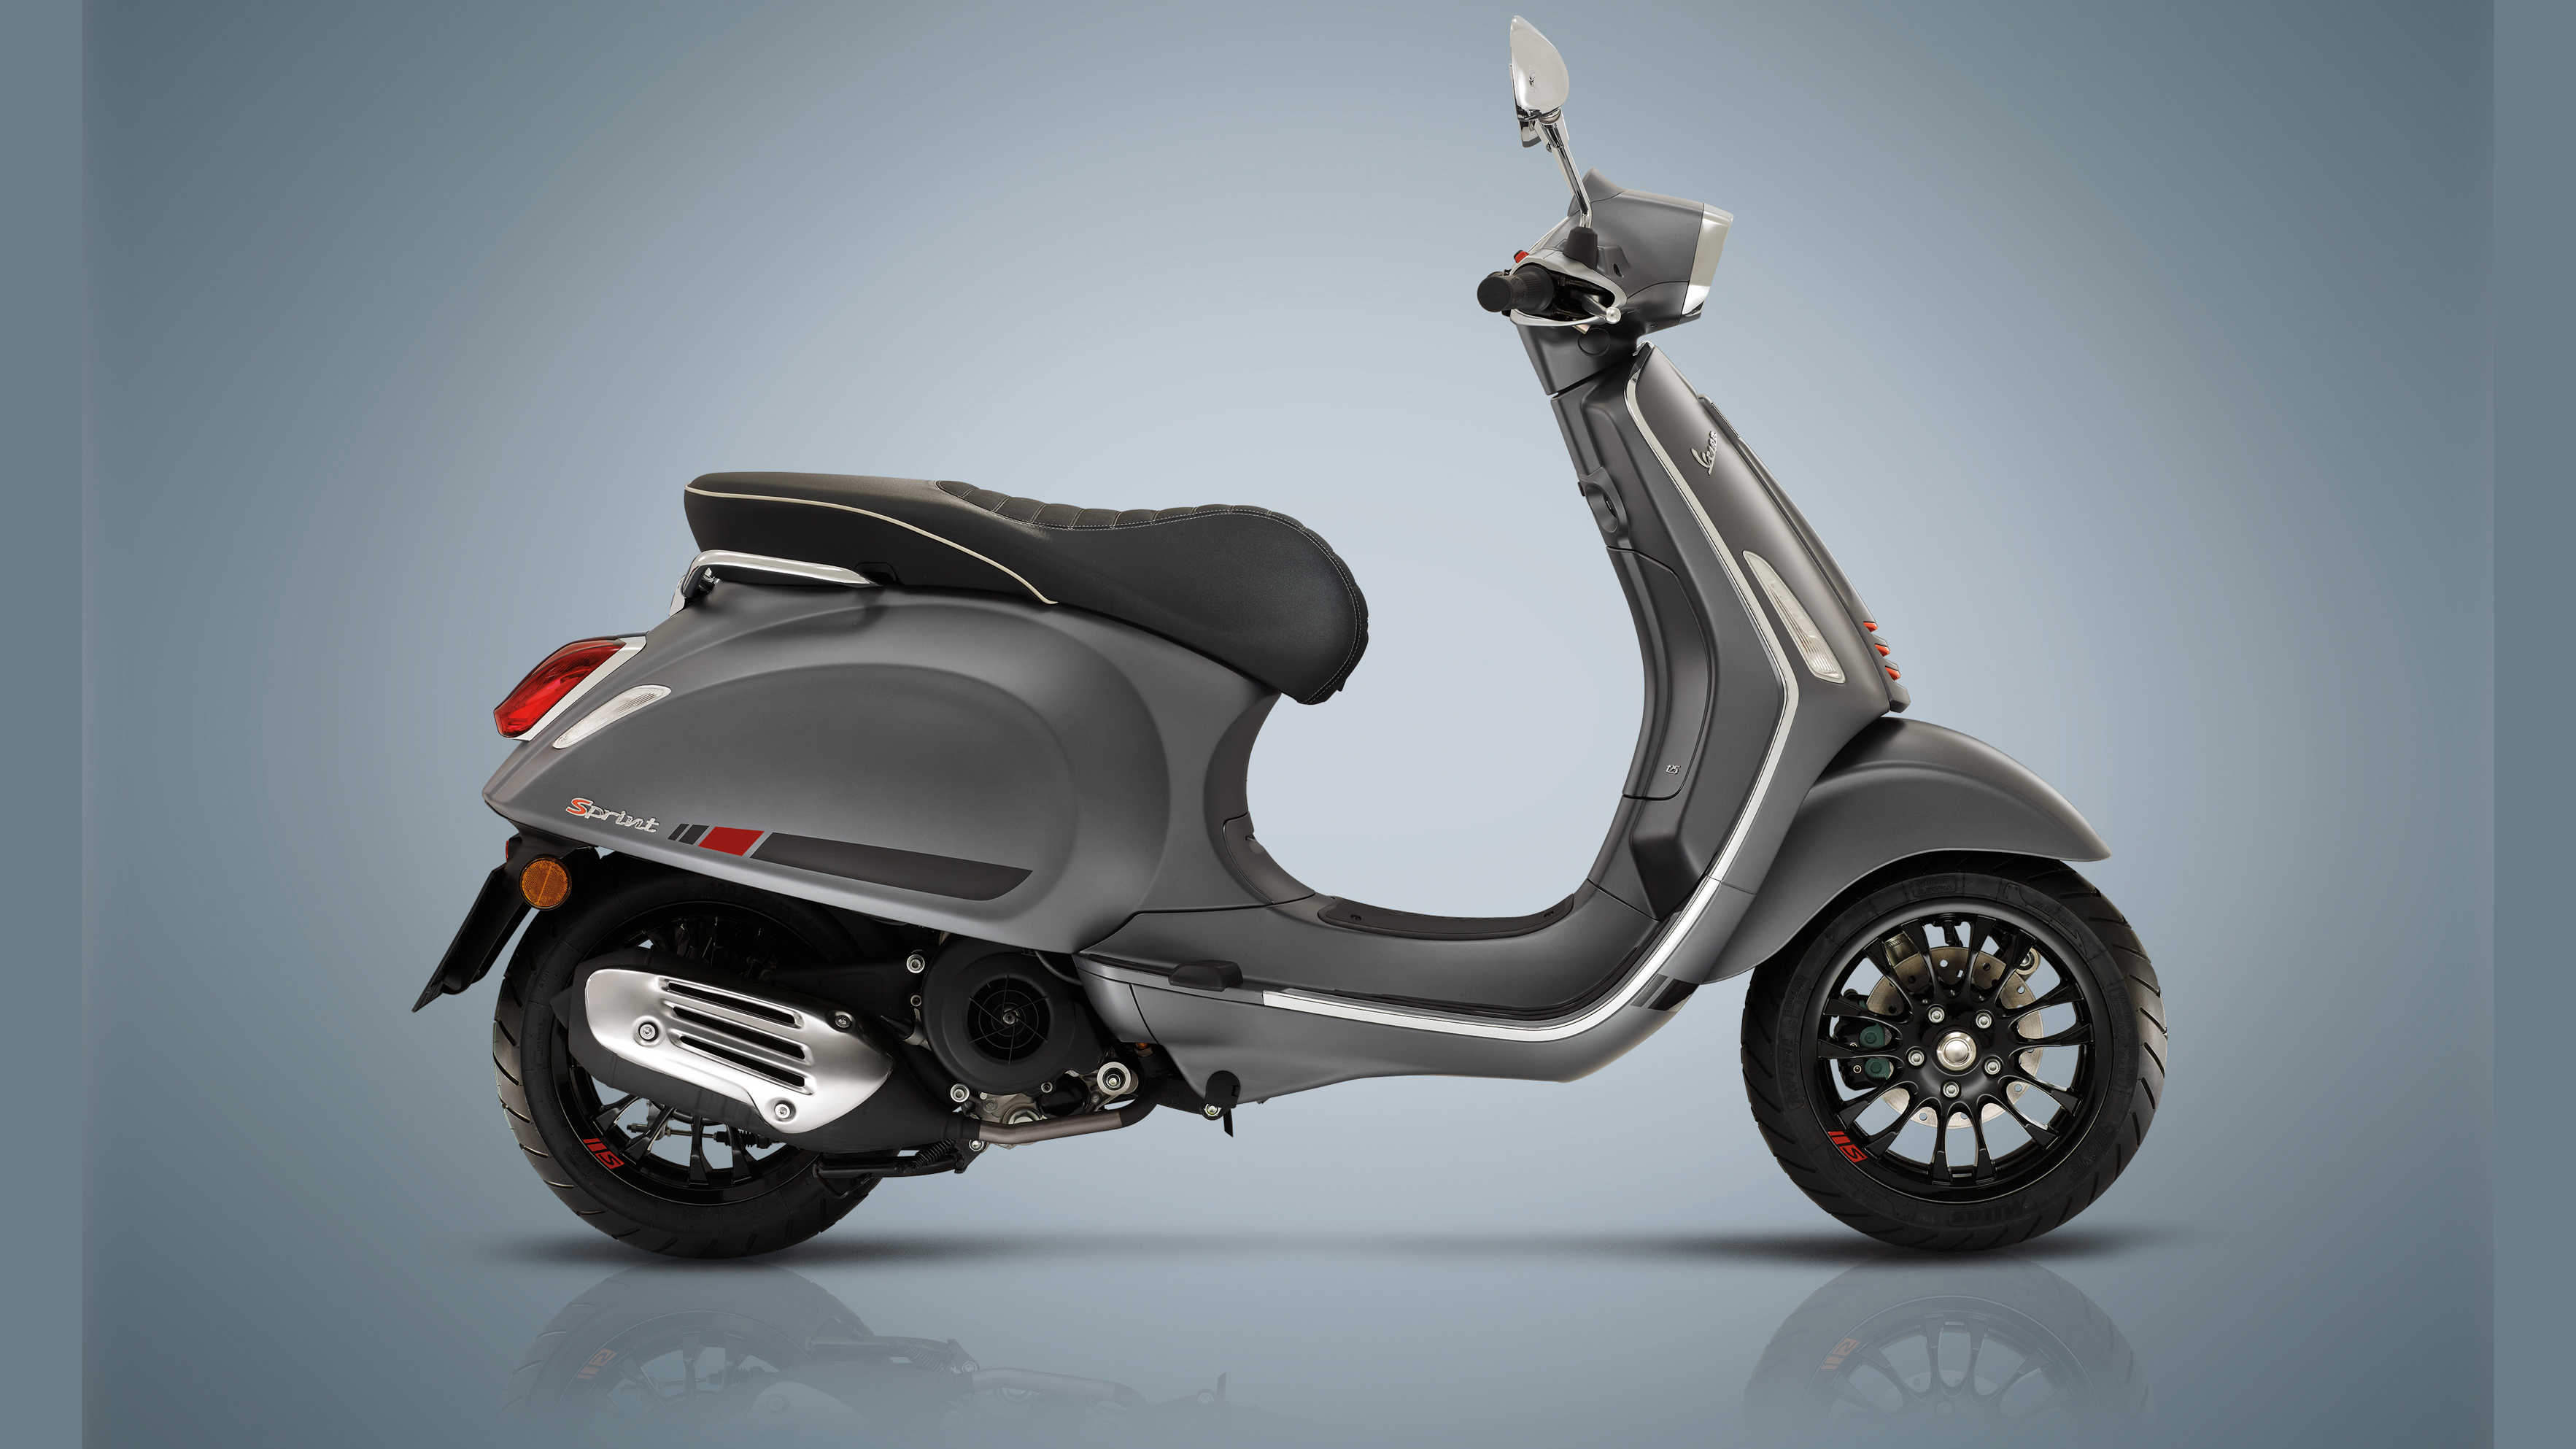 vespa sprint 125 3v s abs stadler motorsport. Black Bedroom Furniture Sets. Home Design Ideas